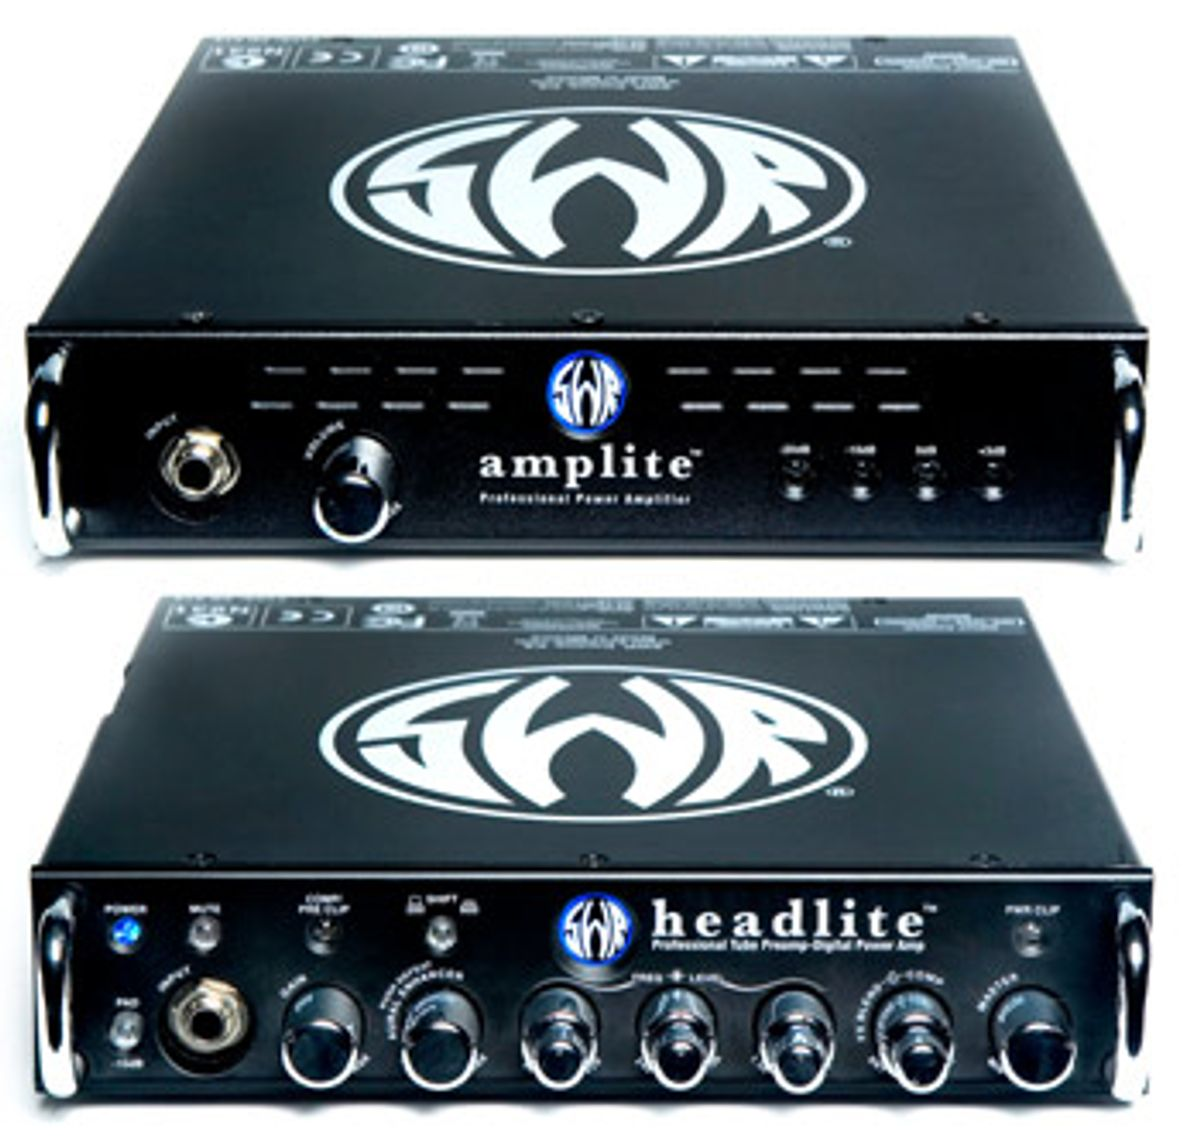 SWR Debuts Headlite and Amplite Bass Amps